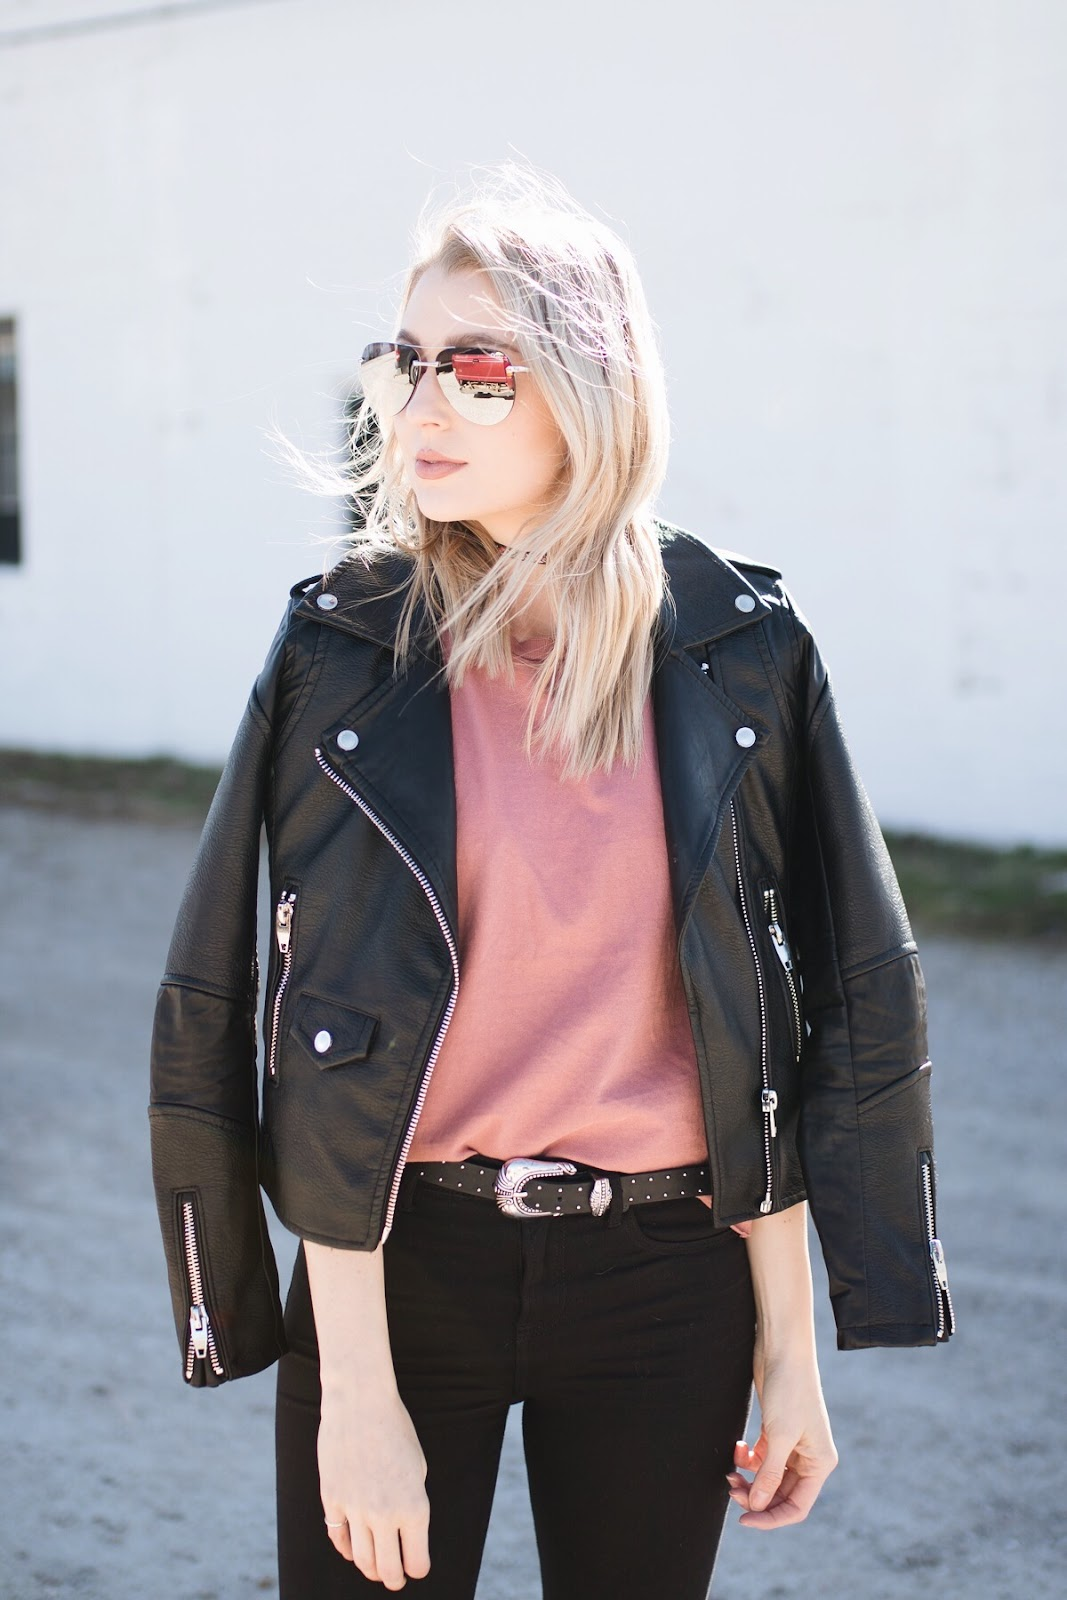 Faux leather jacket over a simple tee